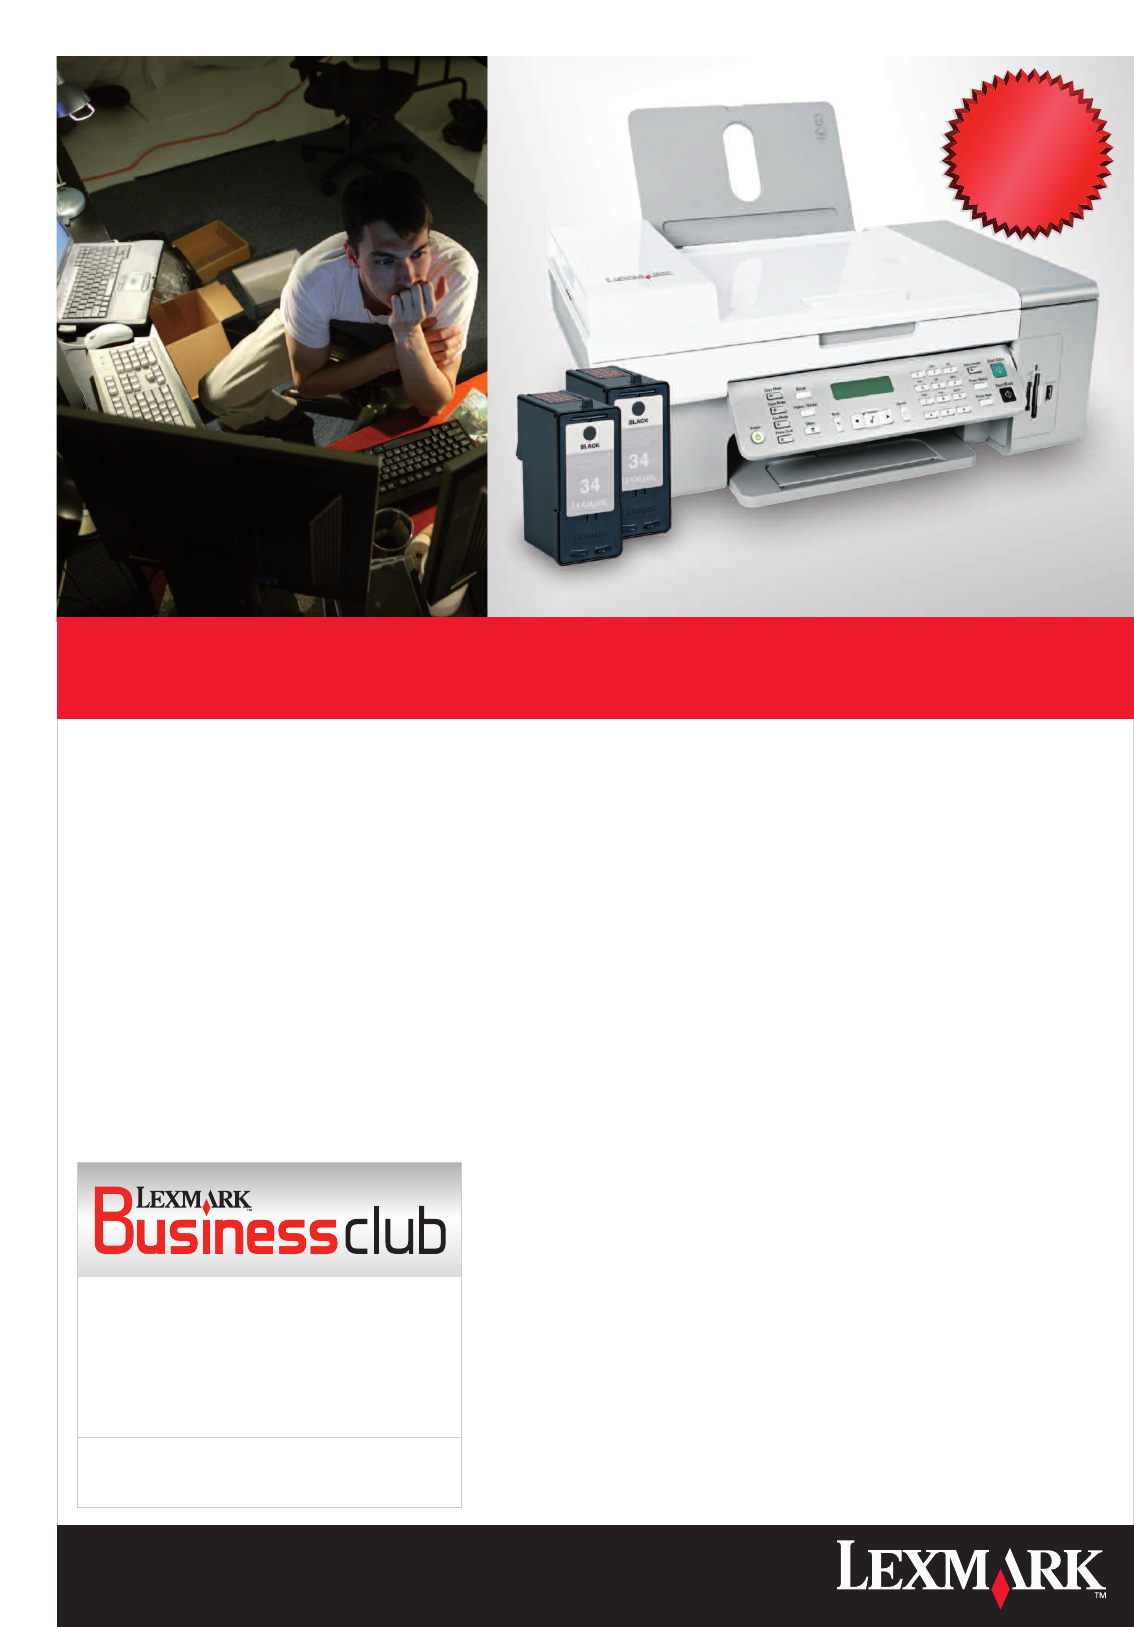 lexmark printer x5470 user guide manualsonline com rh office manualsonline com lexmark x5470 user guide Lexmark X1185